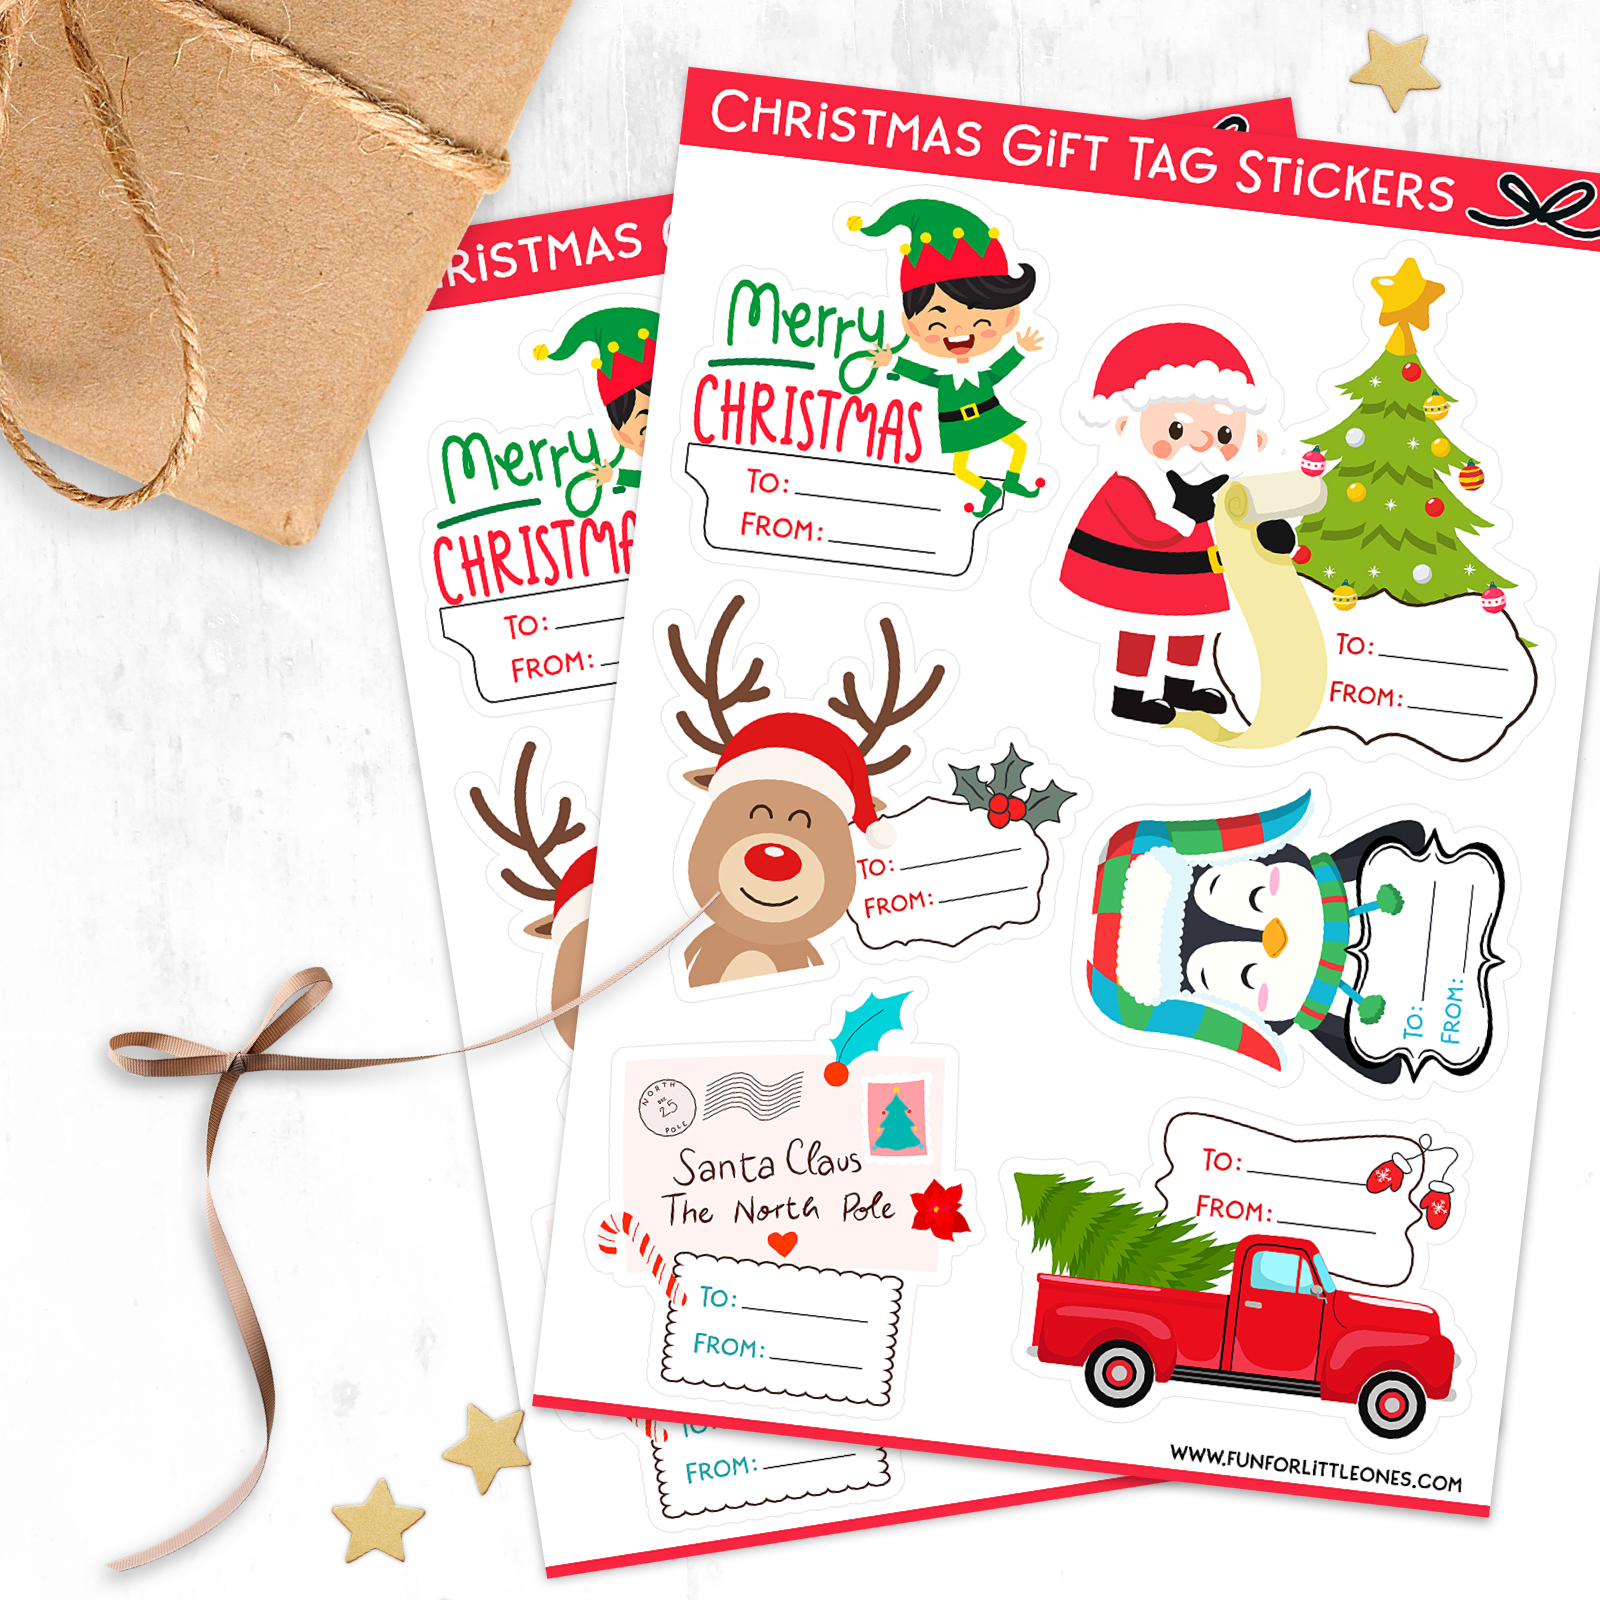 Free Christmas Gift Tag Stickers - Cricut Print & Cut 1